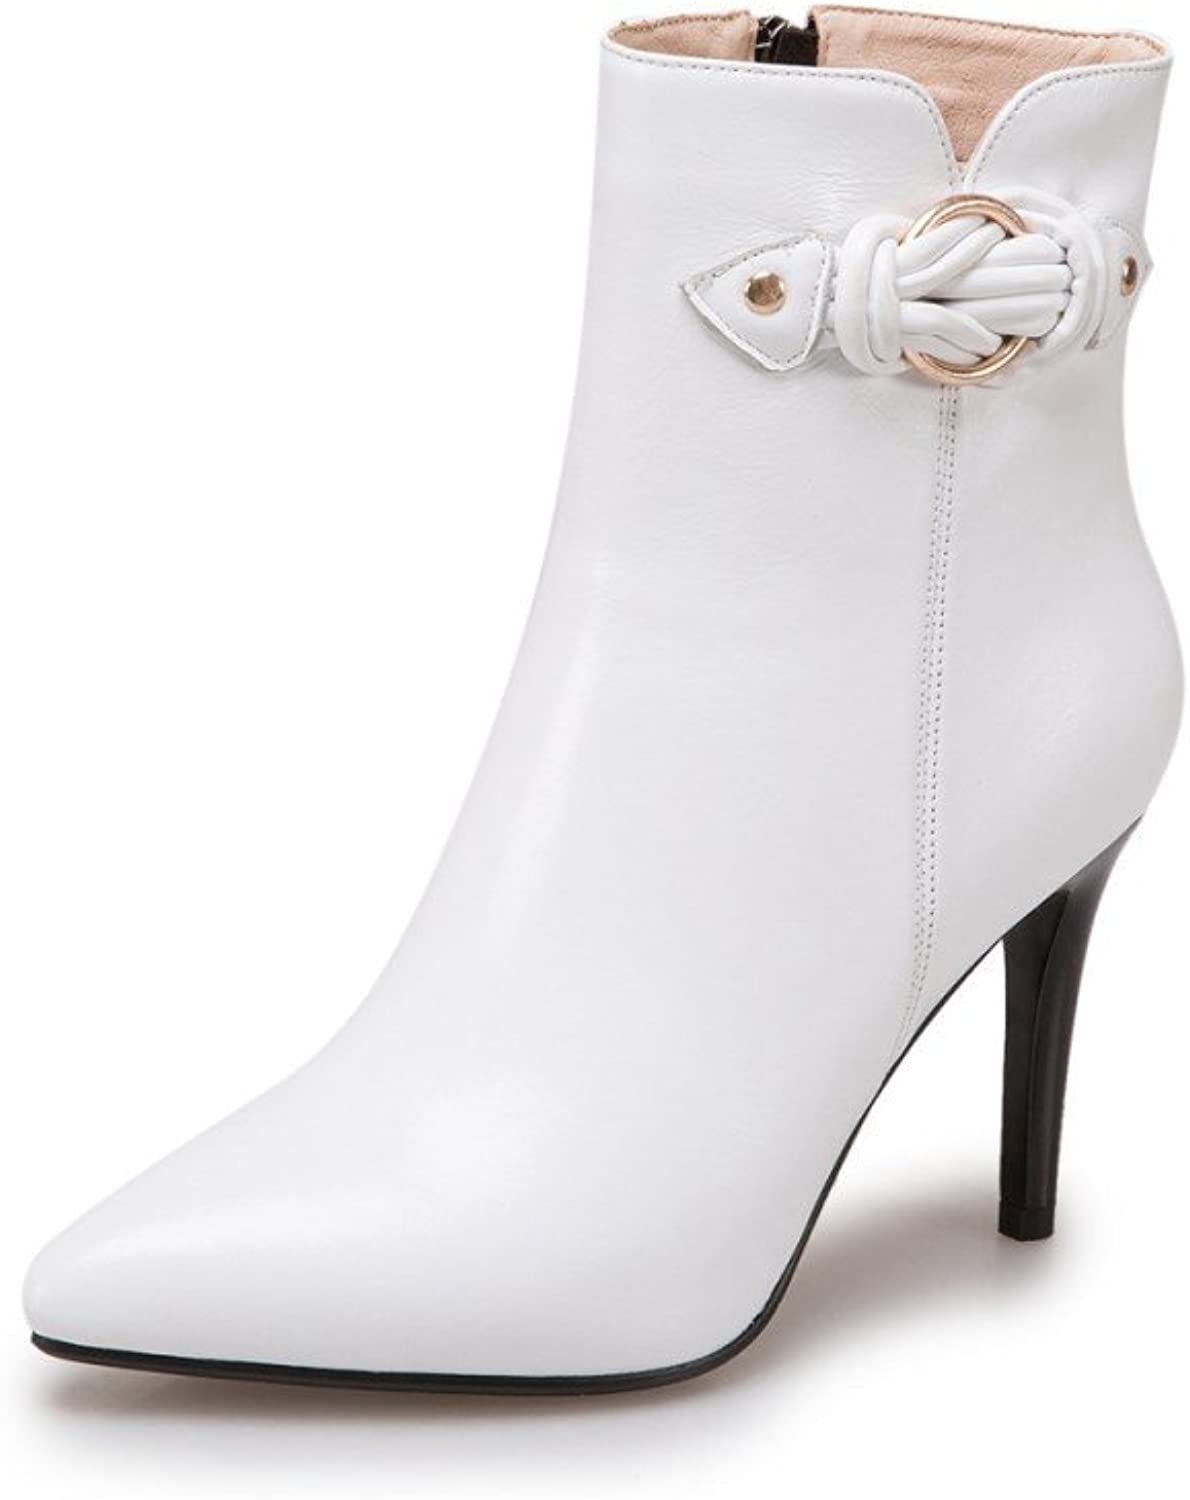 Nine Seven Genuine Leather Women's Clear Pointed Toe Ankle Booties - Handmade Gorgeous High Heel Dress Boots